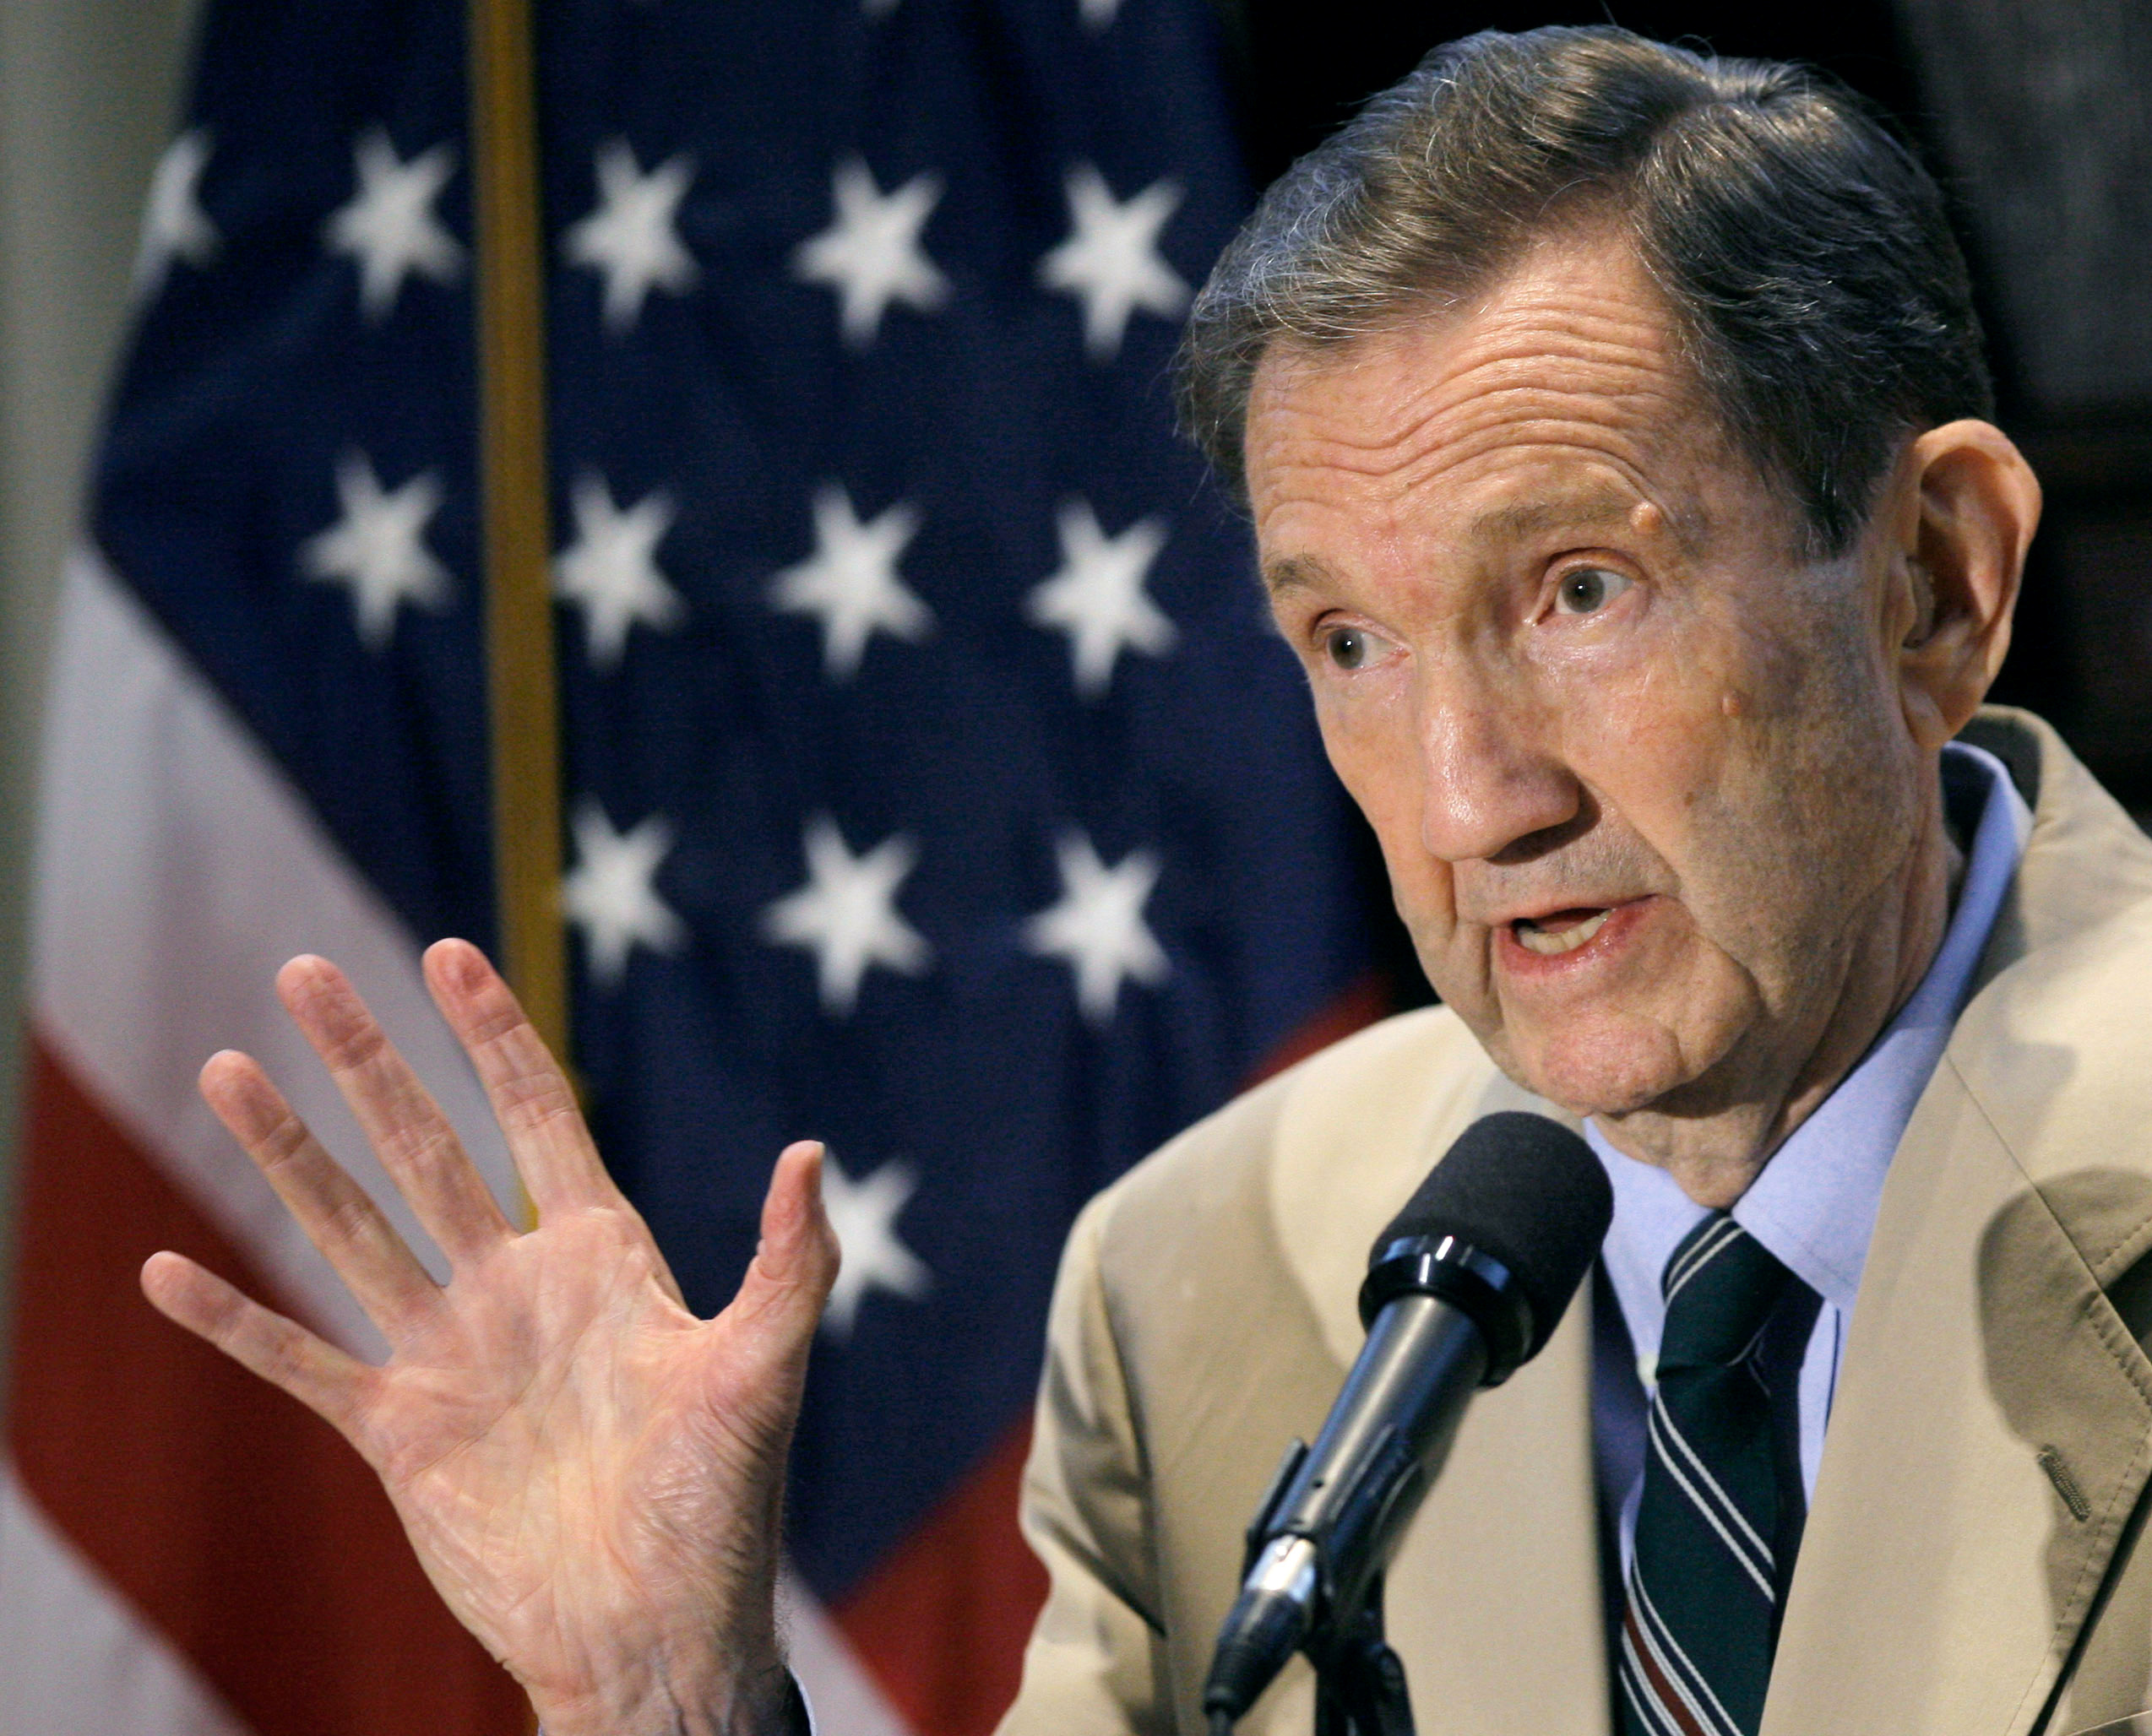 Former U.S. Attorney General Ramsey Clark holds a discussion on the probability of a death or life sentence for Saddam Hussein in Washington October 5, 2006. REUTERS/Jim Young/File Photo